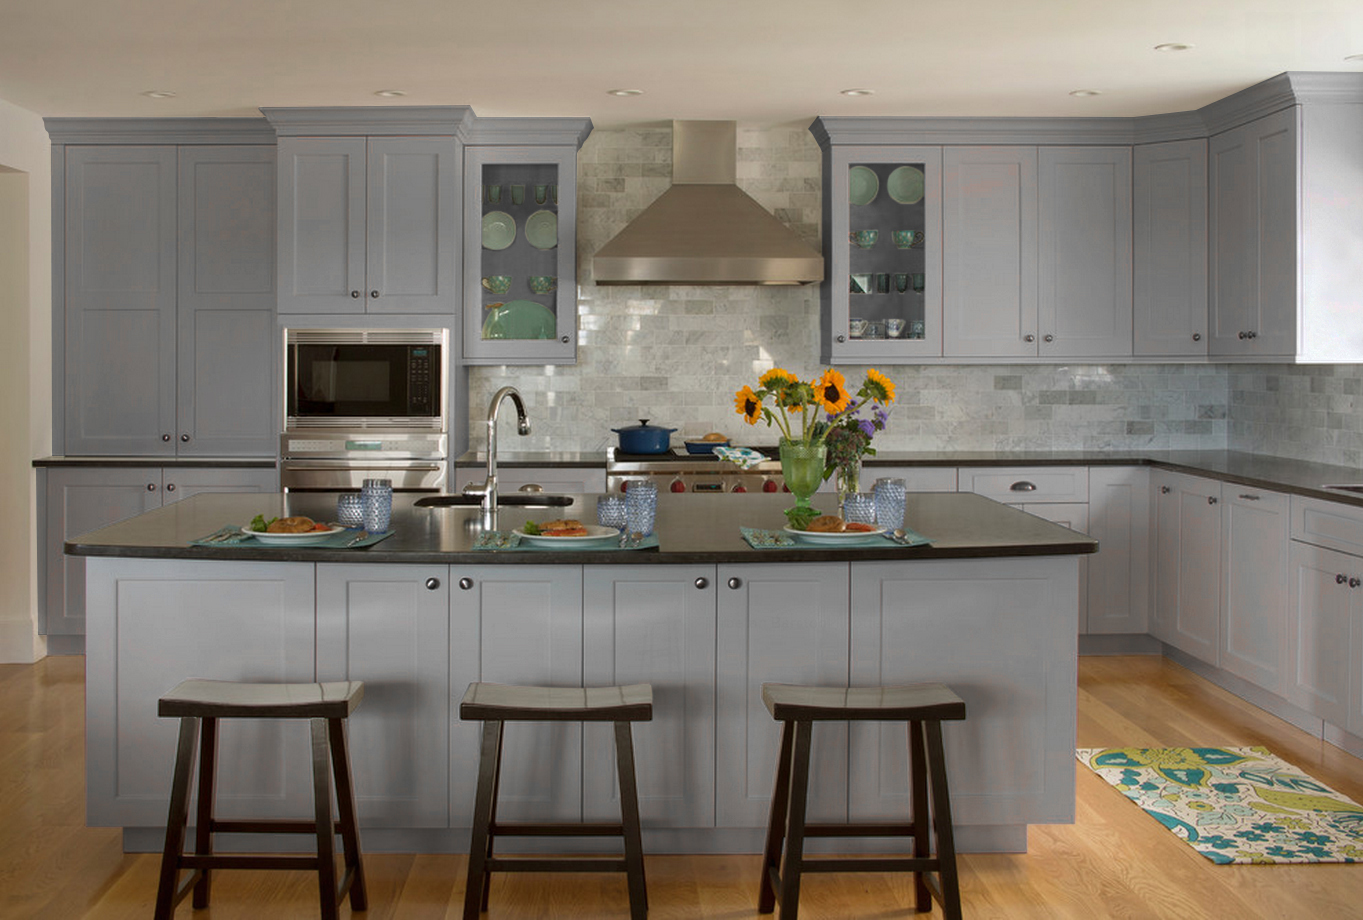 Rta shaker kitchen cabinets affordable buy shaker antique for Cheapest rta kitchen cabinets